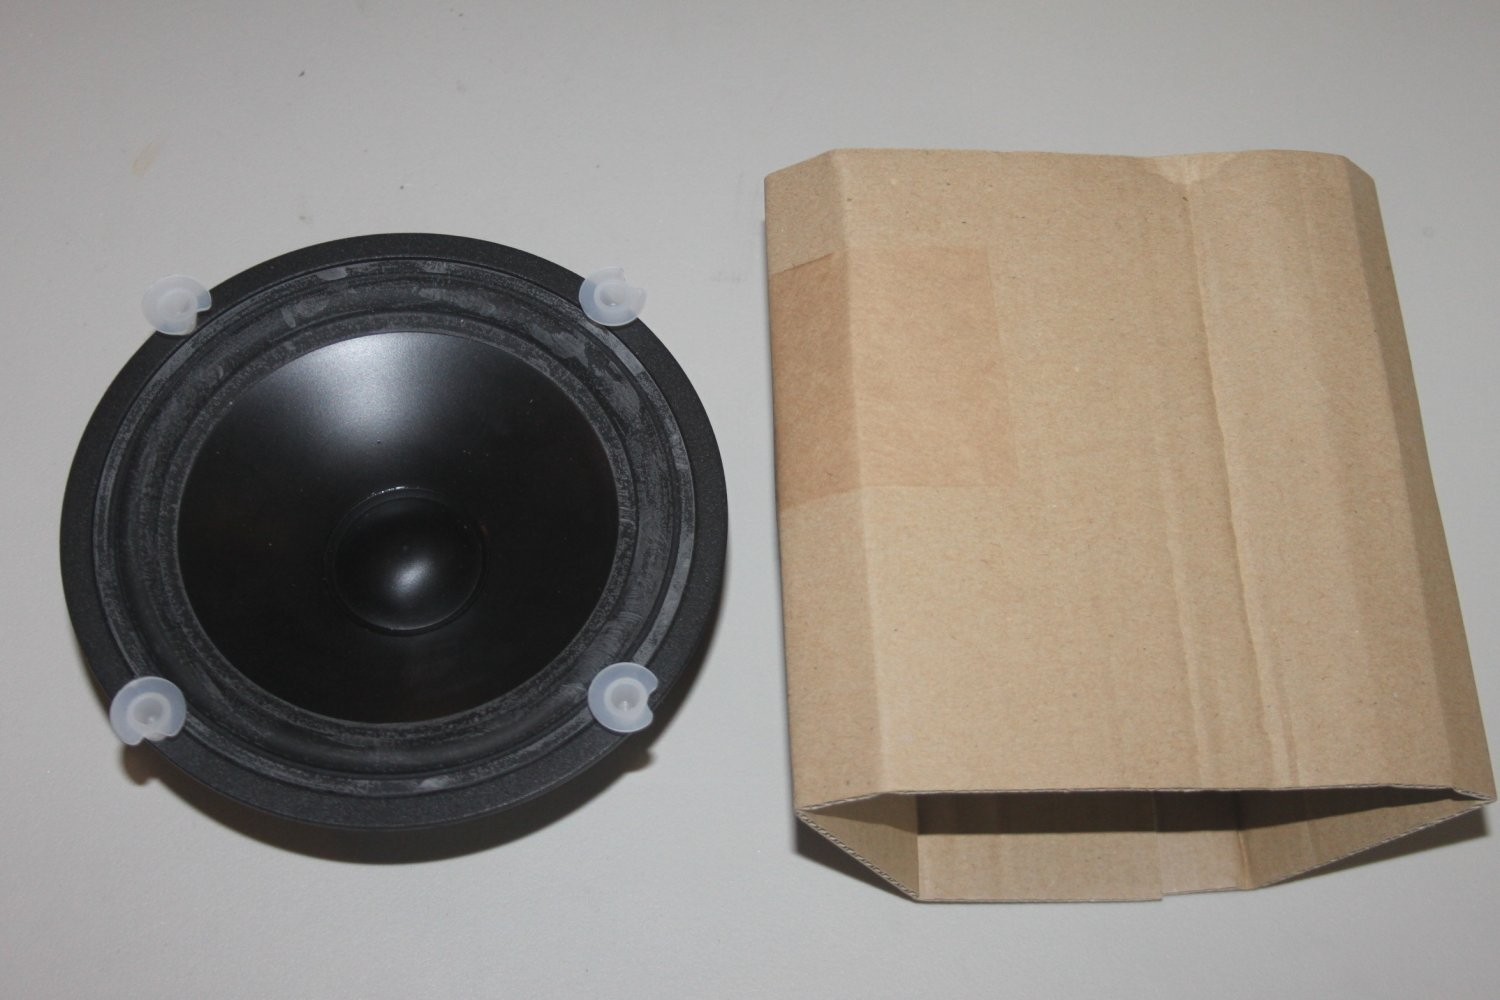 "Vifa P17wj-00 6.5"" Midbass Woofer Speaker for Dunlavy New and Ultra Rare"